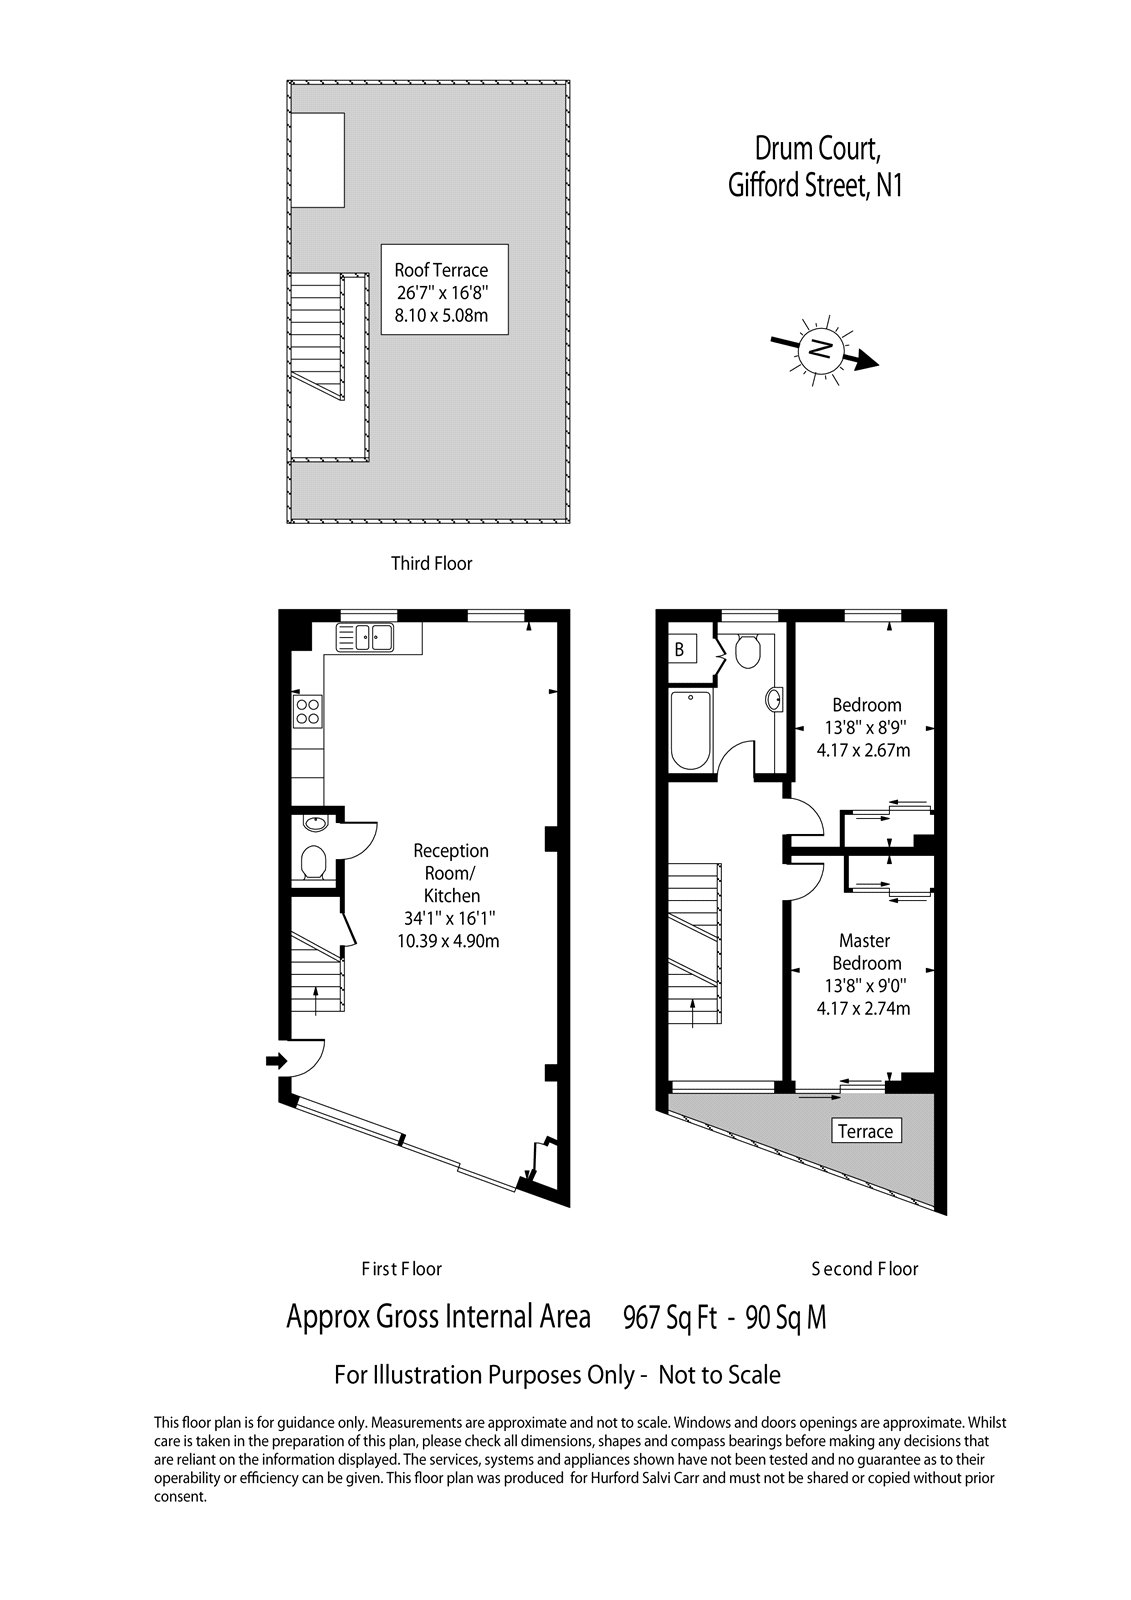 Gifford Street, Kings Cross, London, N1 floorplan